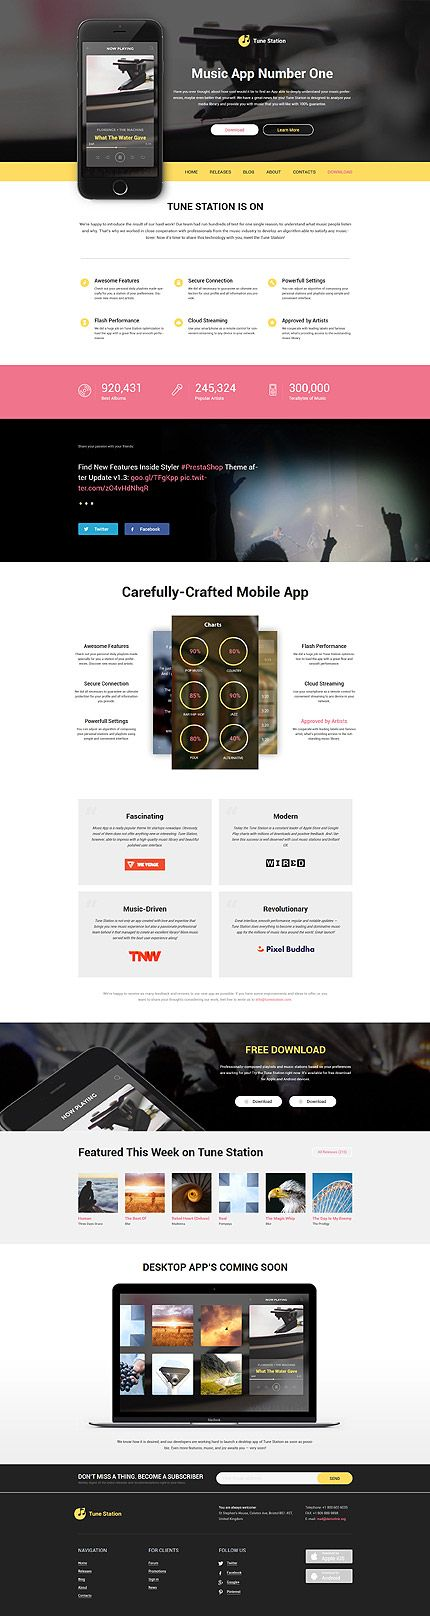 Software website inspirations at your coffee break? Browse for more WordPress #templates! // Regular price: $75 // Sources available: .PSD, .PHP, This theme is widgetized #Software #WordPress